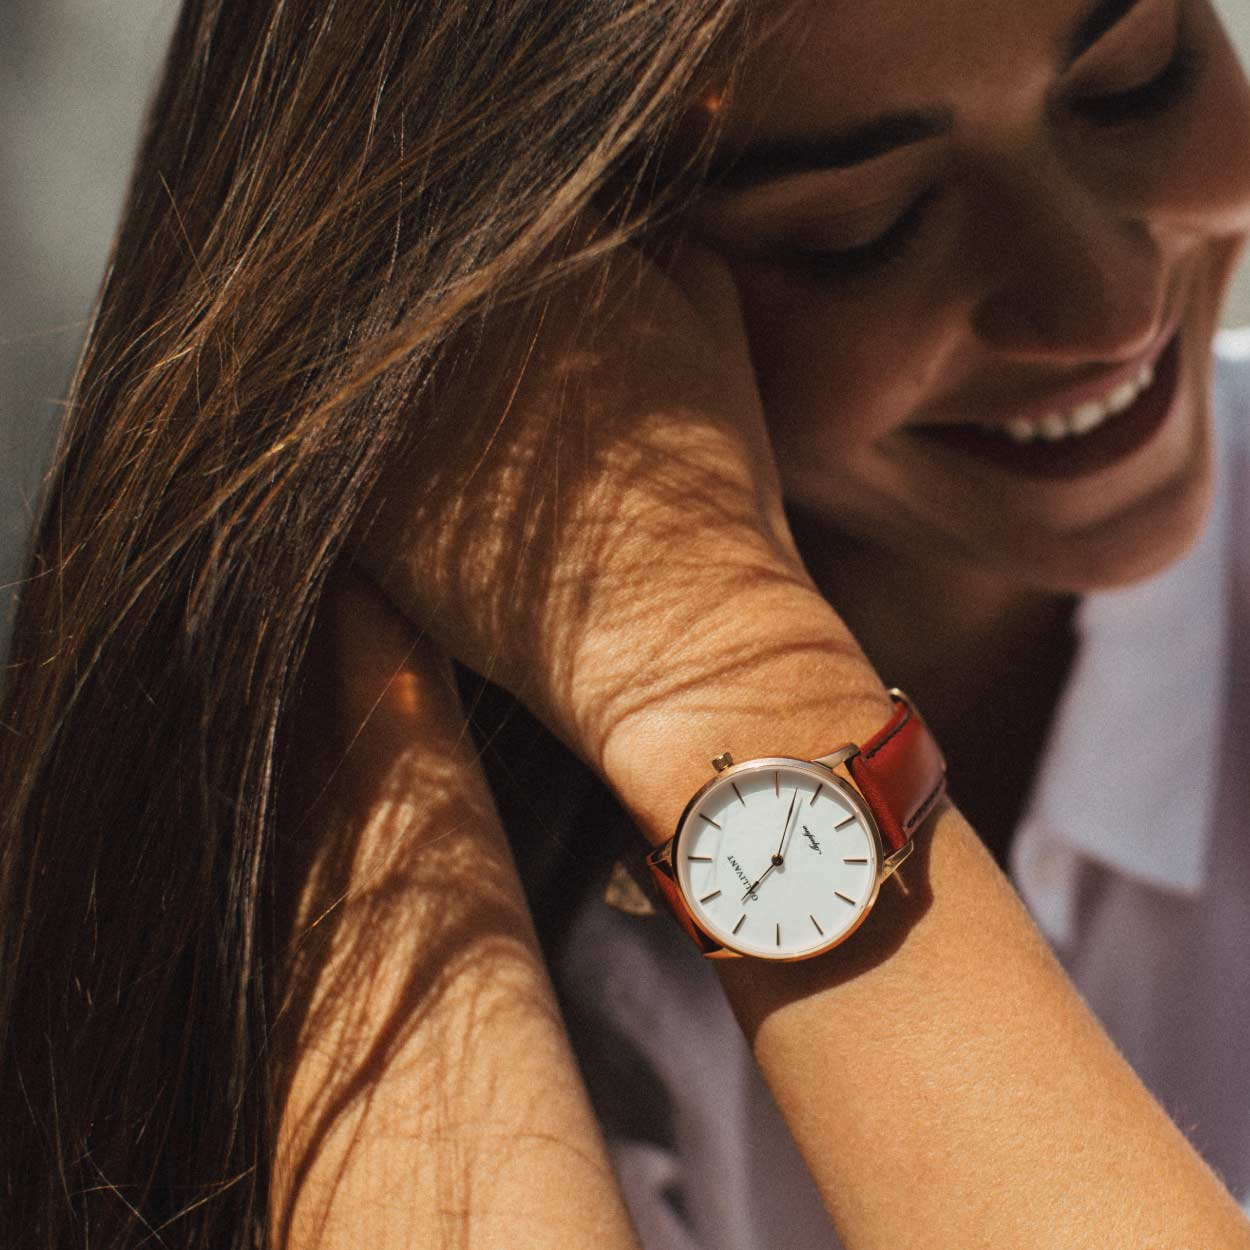 Woman Smiling woman in white shirt wearing a Gallivant Aquafino watch